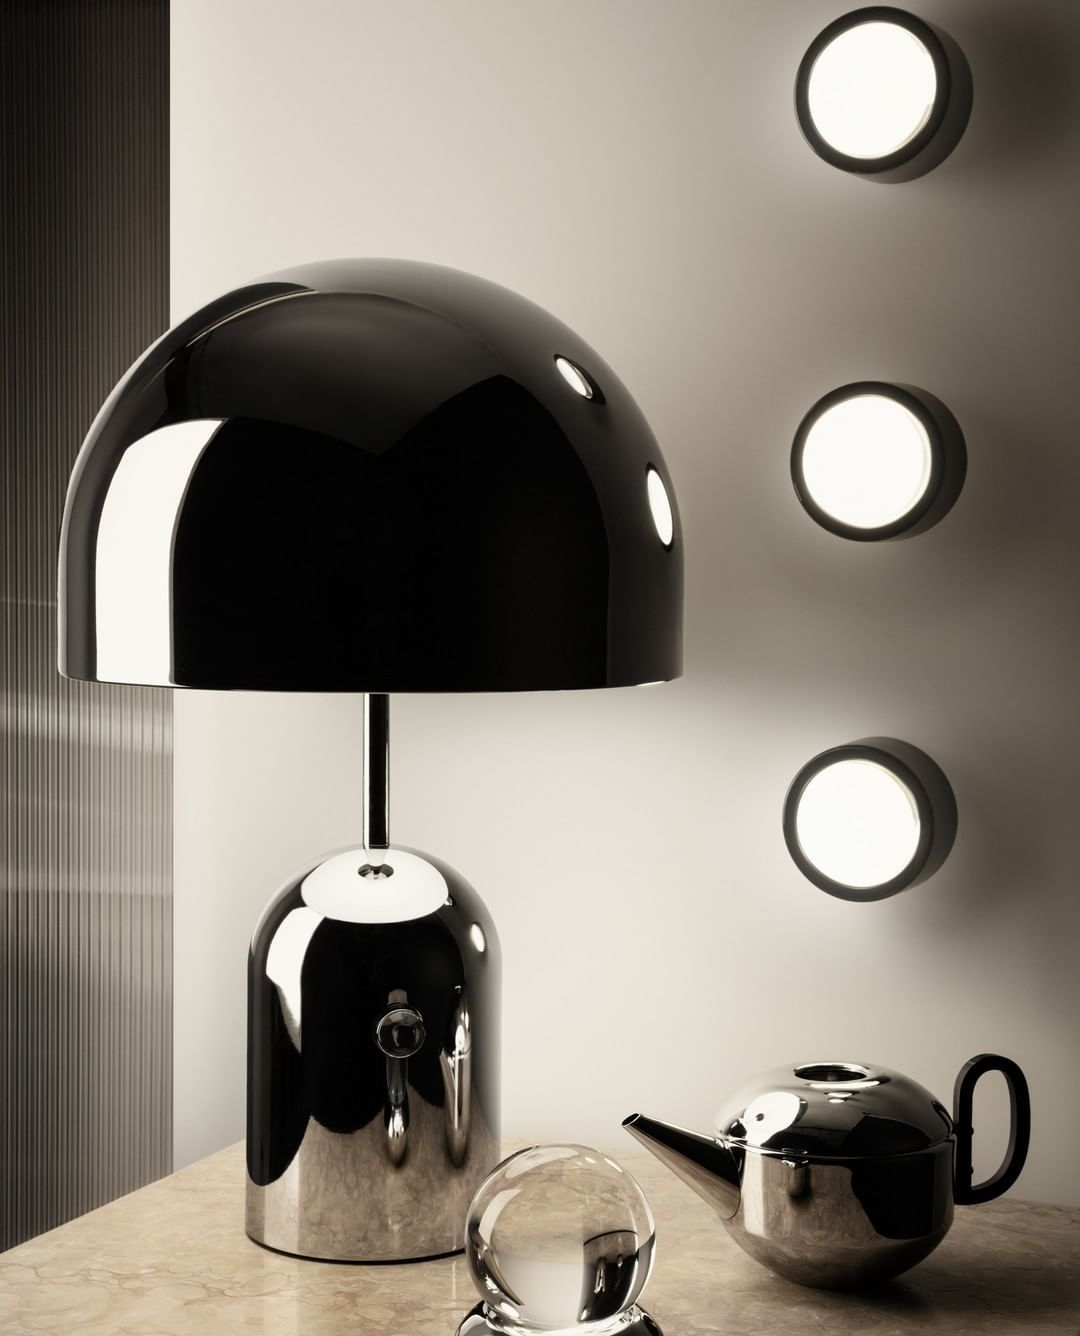 Tom Dixon On Instagram Spot Wall Lights Highly Functional And Unexpectedly Decorative With Our Bell Table Light An Exercise In 2020 Light Table Wall Lights Lights